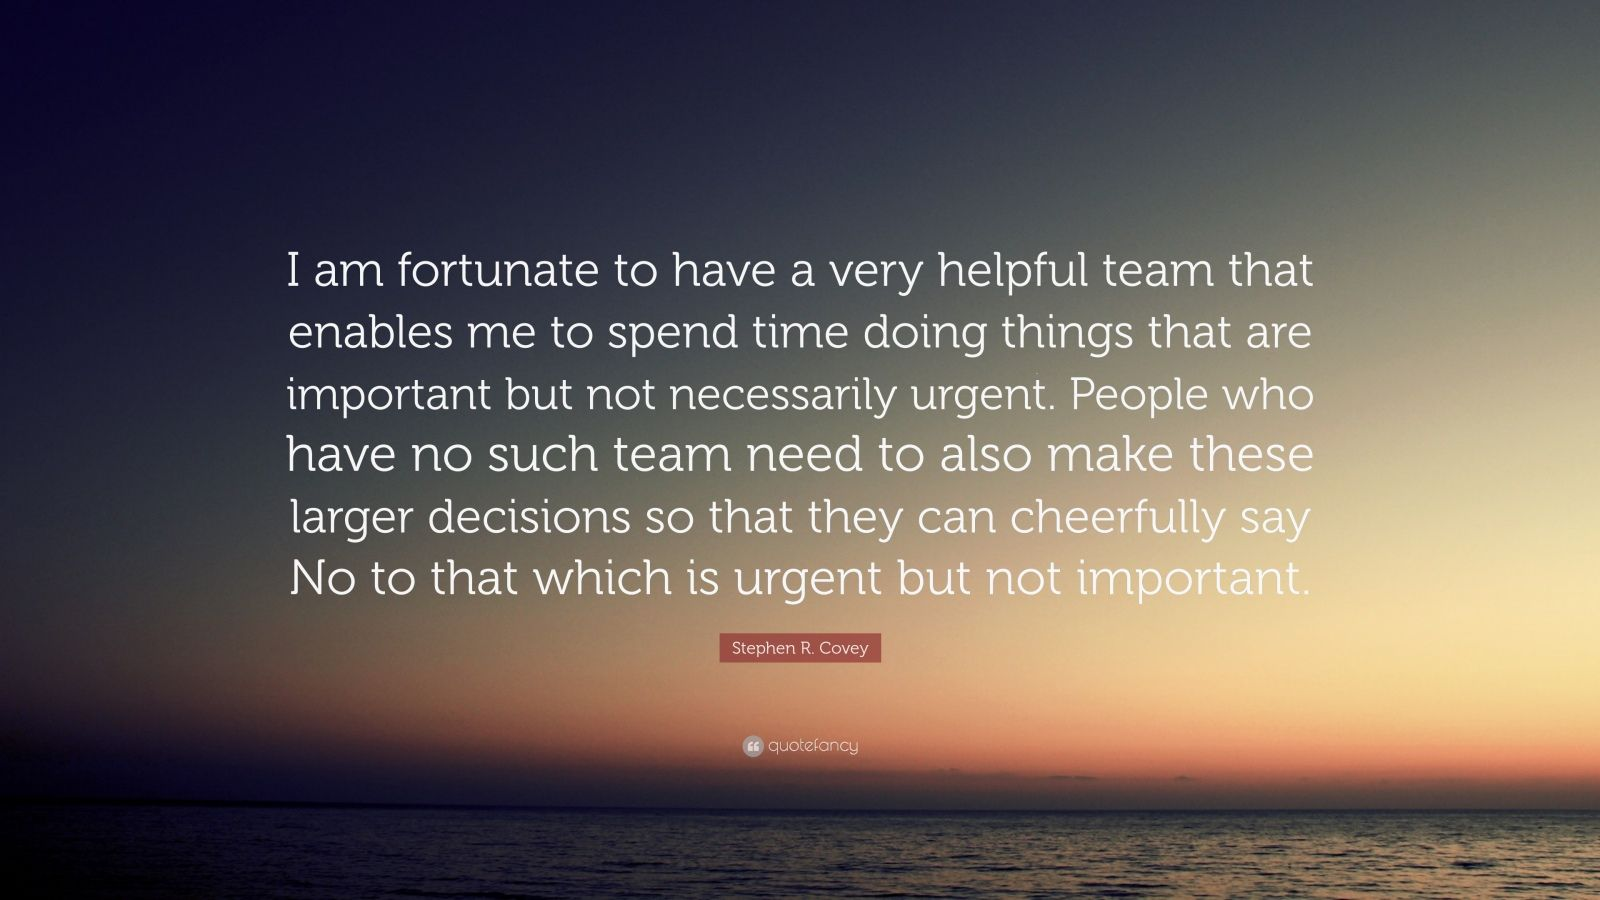 """Stephen R. Covey Quote: """"I am fortunate to have a very helpful team that enables me to spend time doing things that are important but not necessarily urgent. People who have no such team need to also make these larger decisions so that they can cheerfully say No to that which is urgent but not important."""""""